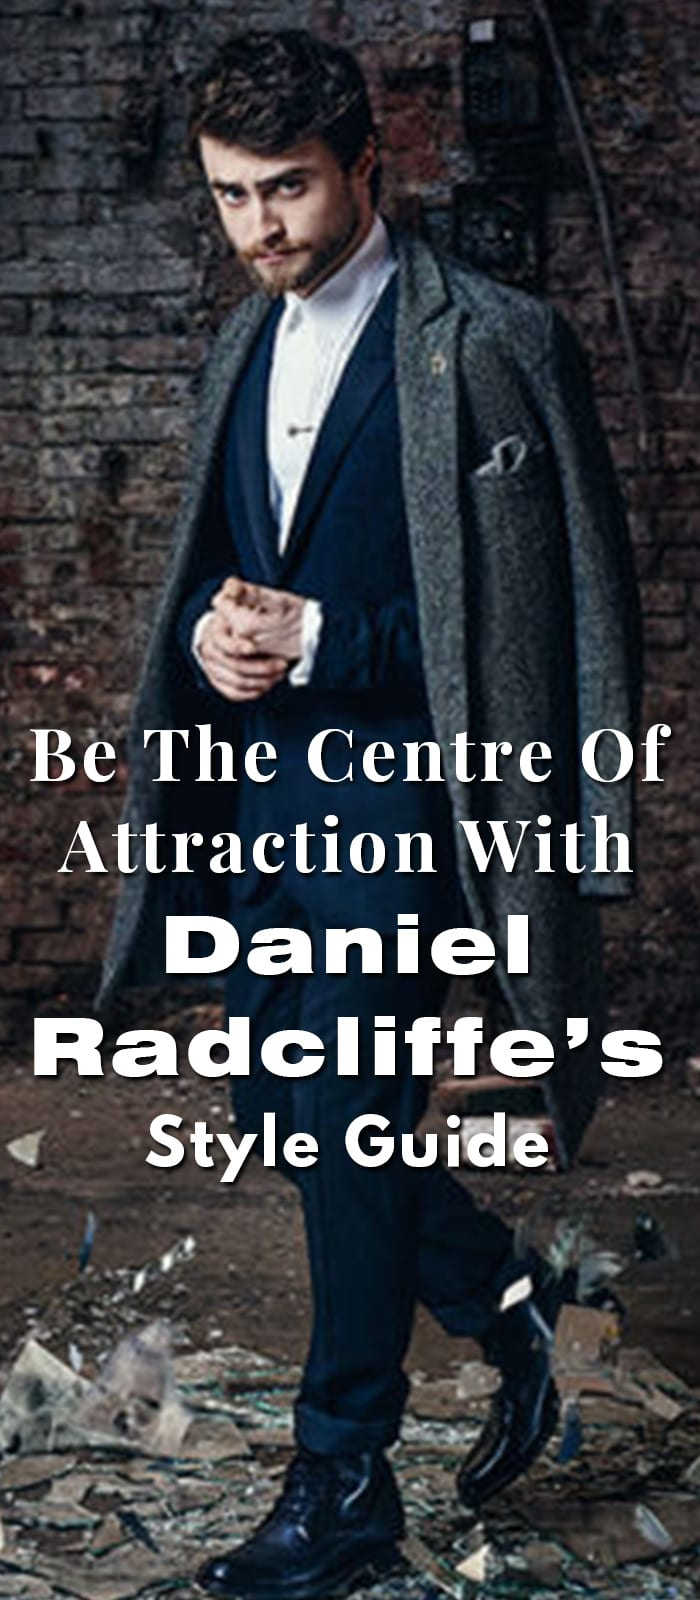 Be The Centre Of Attraction With Daniel Radcliffe's Style Guide